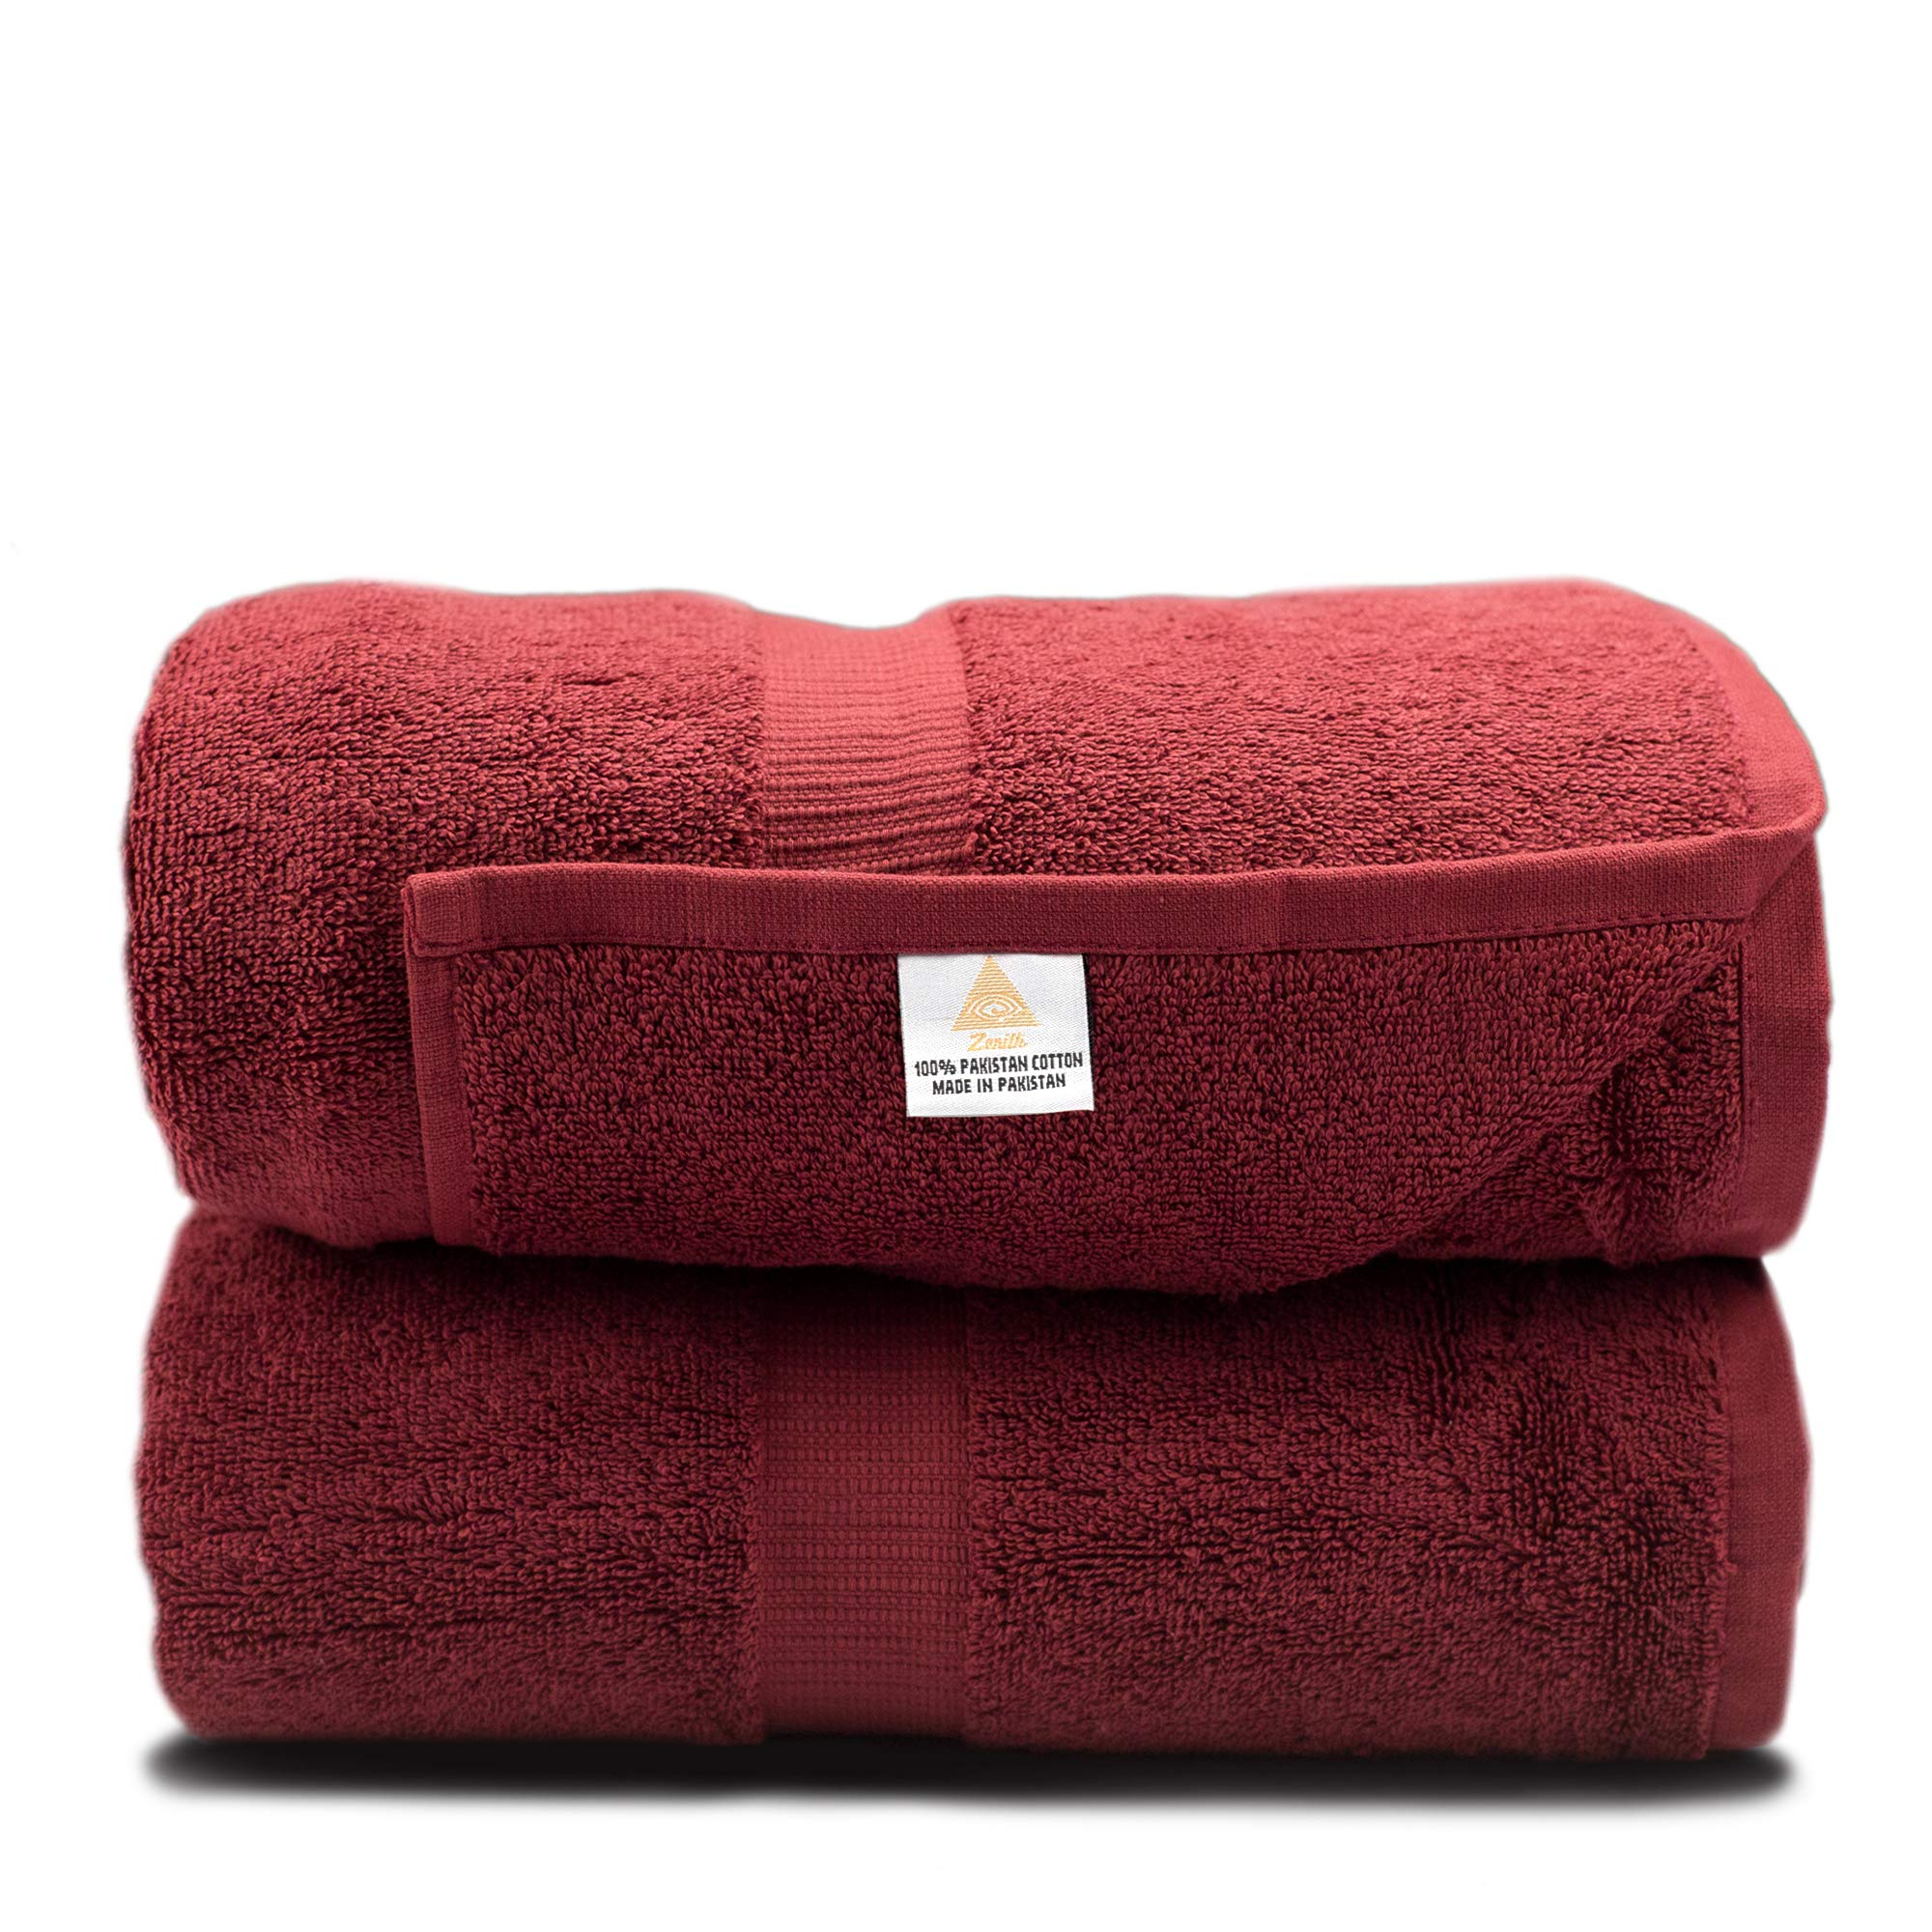 Zenith Luxury Bath Sheets - (2 Piece) Extra Large 40 X 70 Luxury Bath Towels, 900 GSM, High Absorbency, Thick and Heavy, 100% Cotton